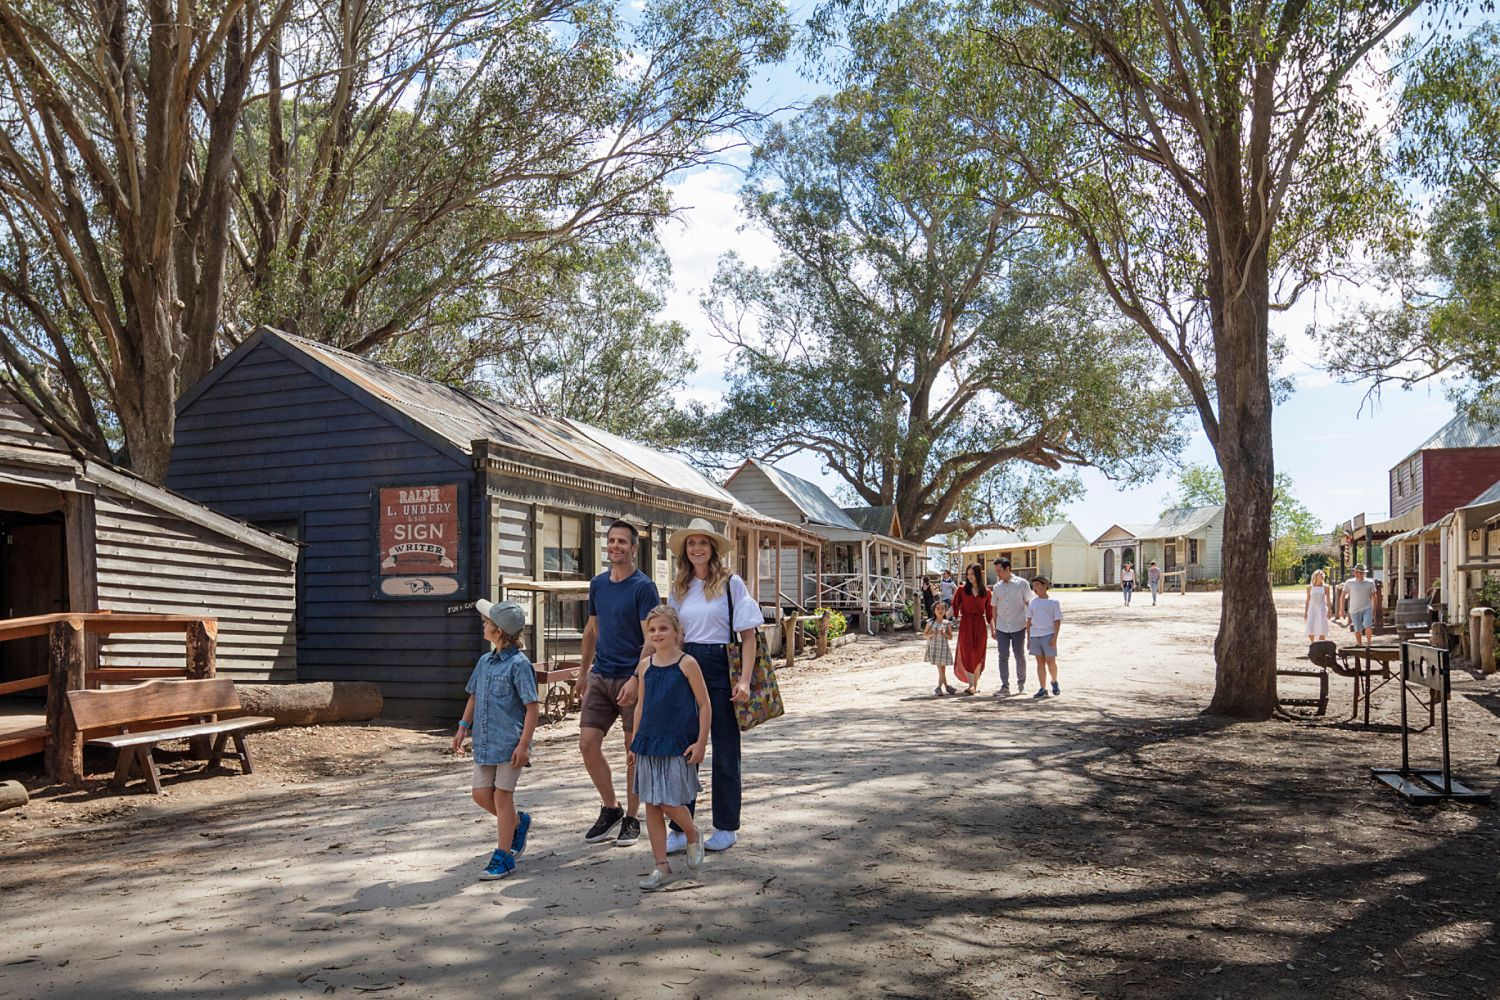 Australiana Pioneer Museum, Wilberforce